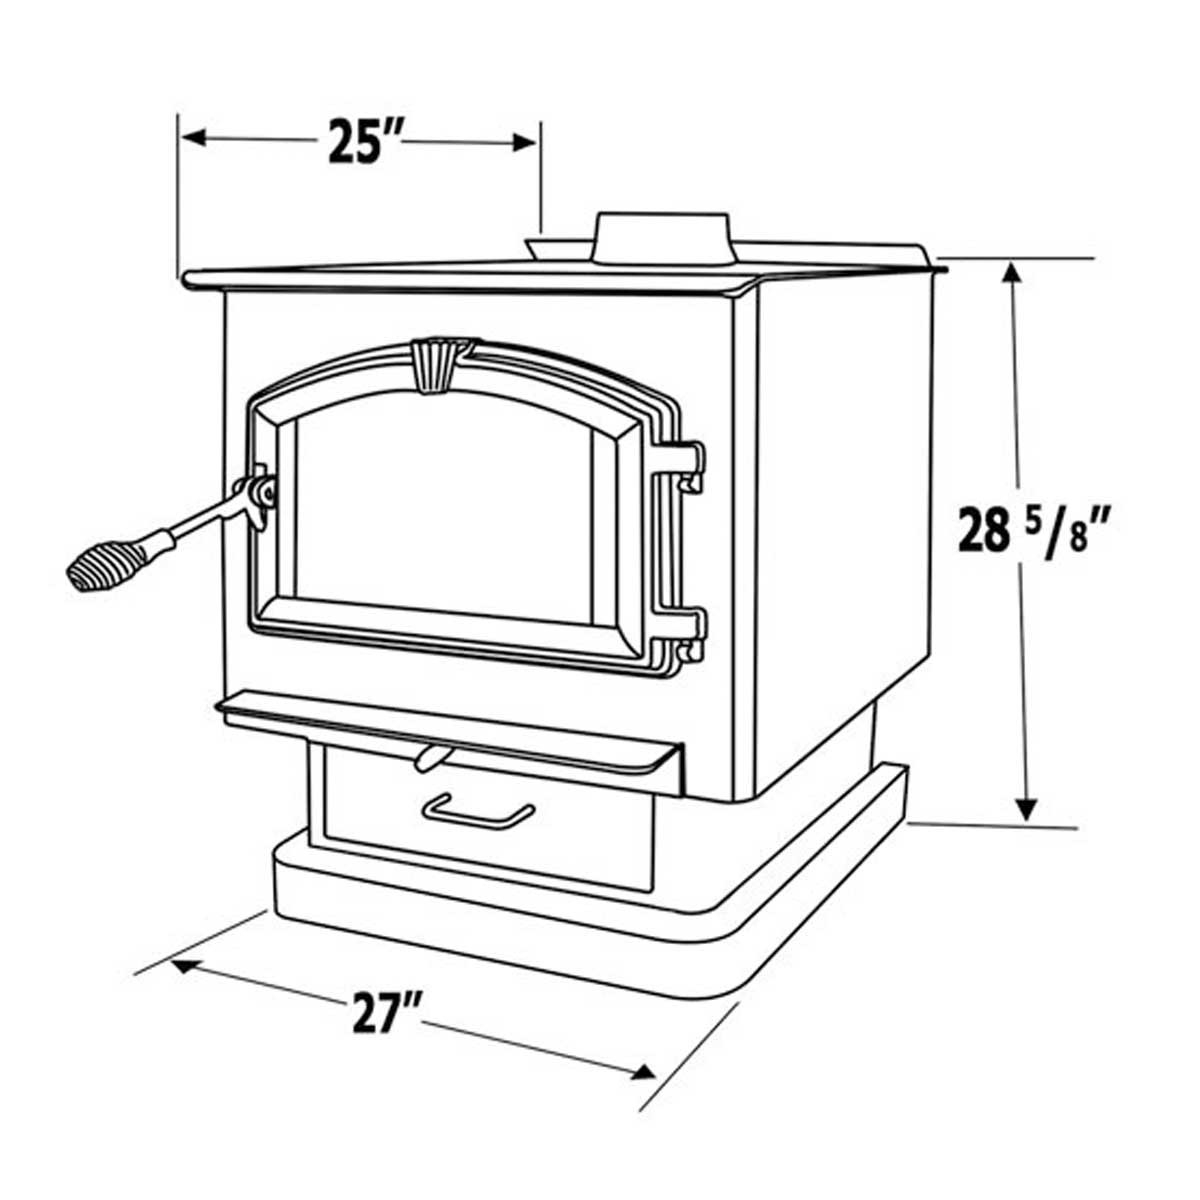 1200x1200 Drawing Of A Stove Country Hearth Woodburning Stove